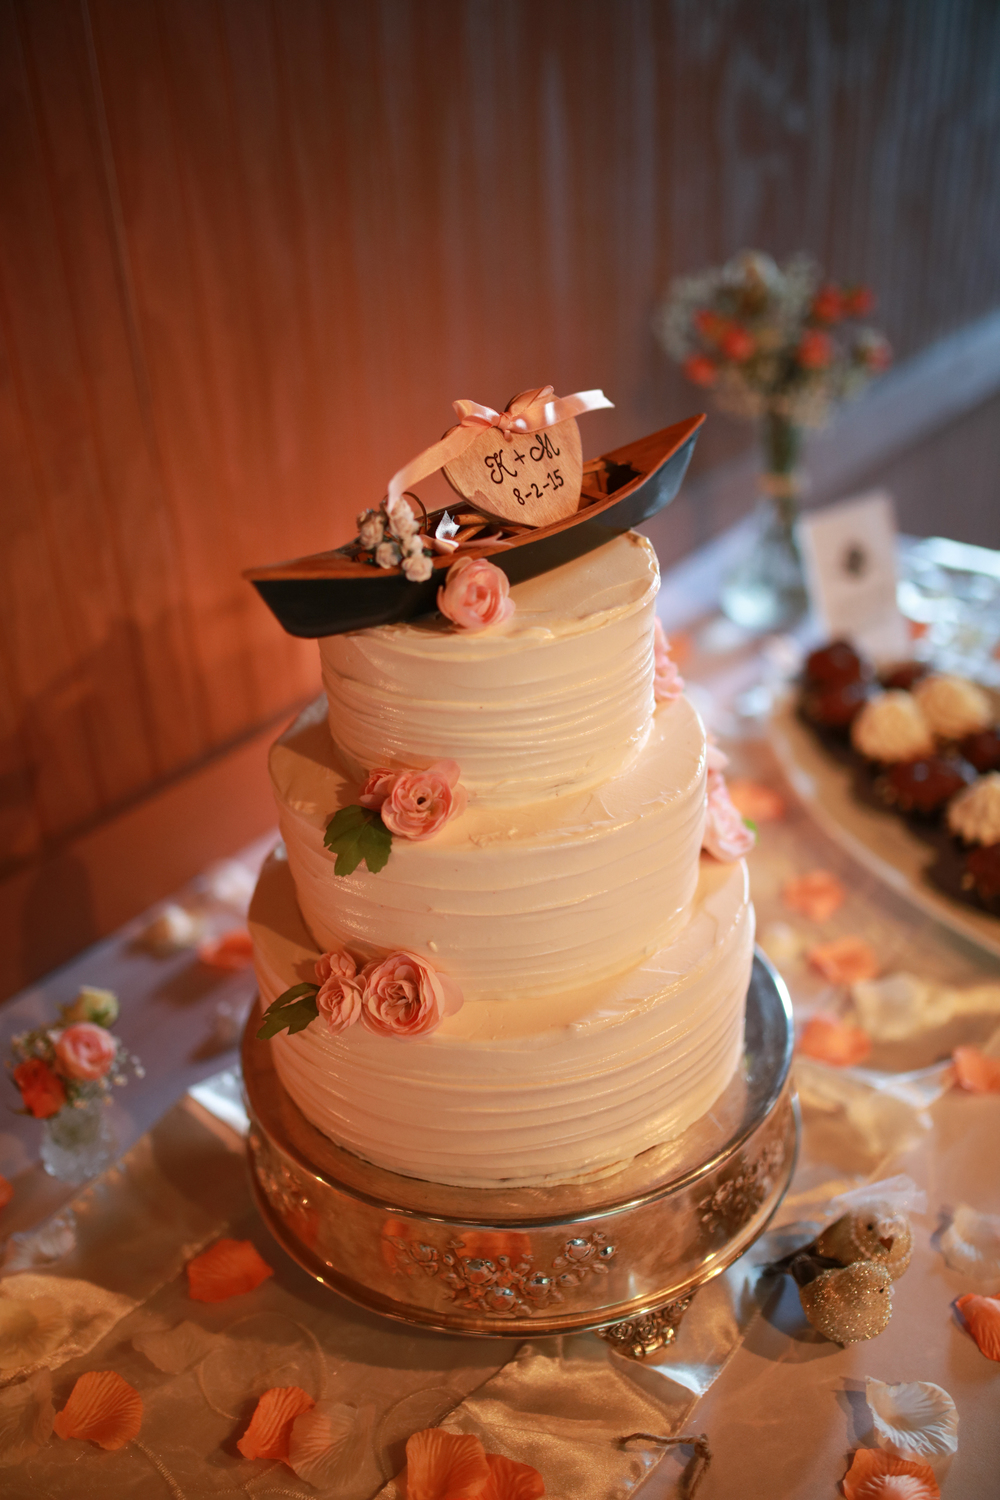 Wedding cake at the full moon resort